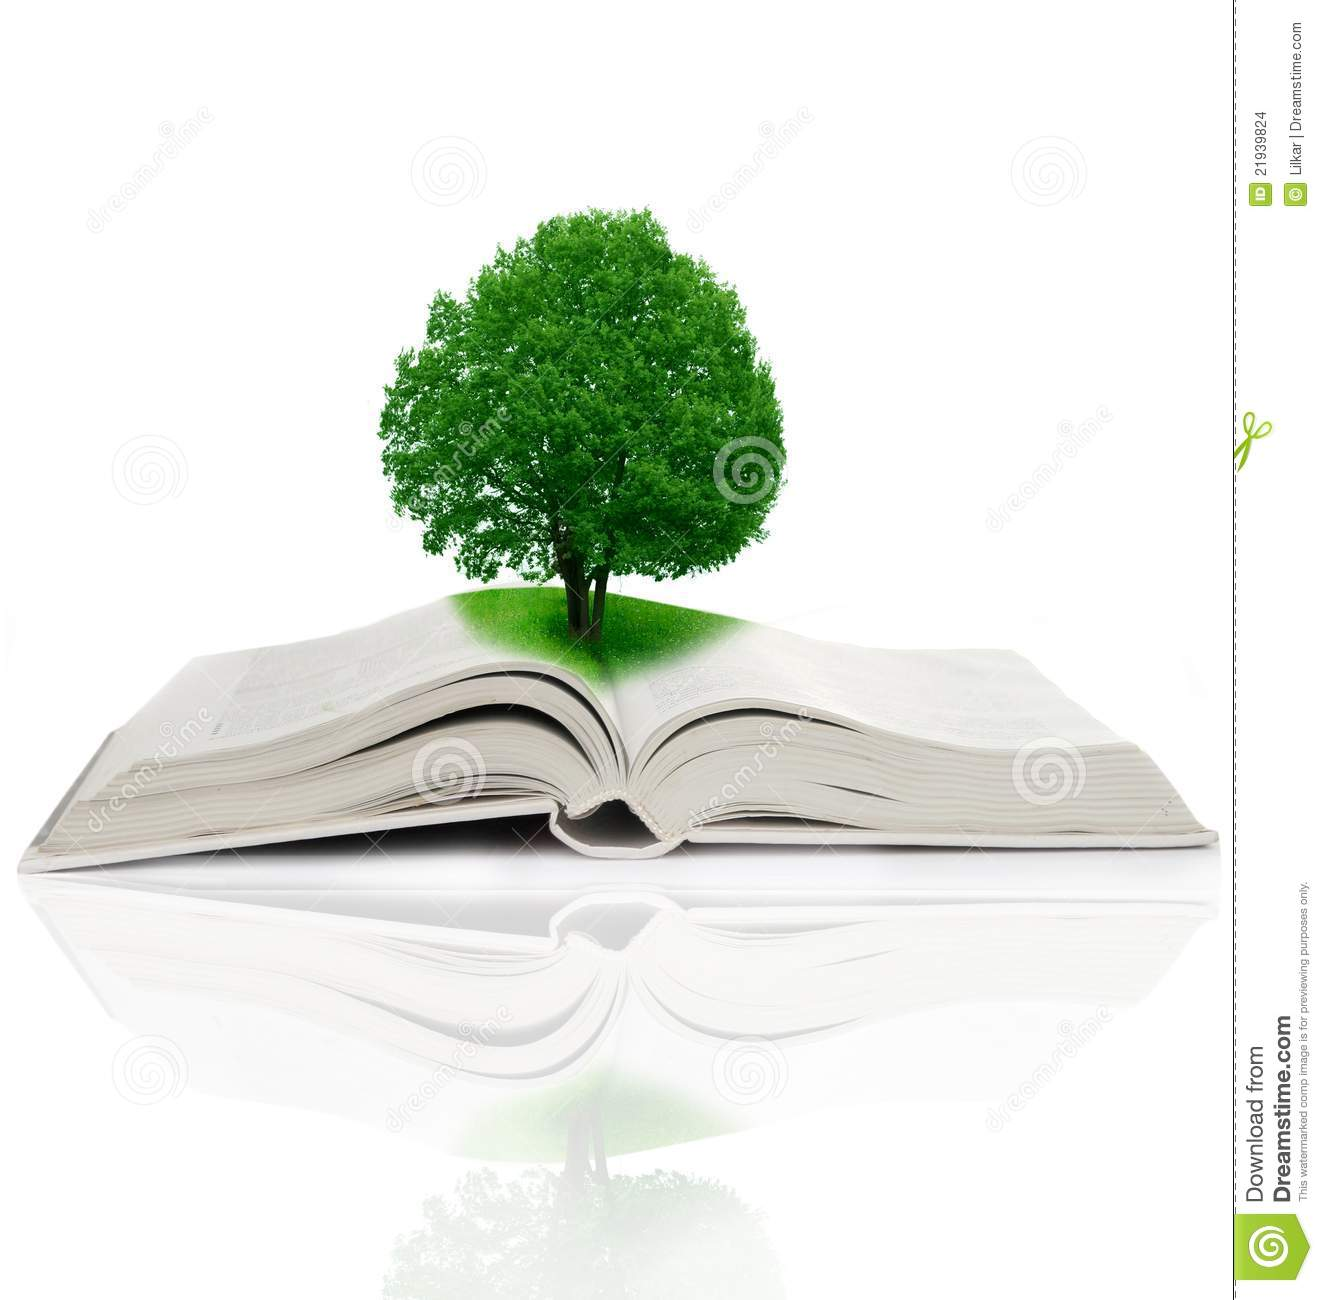 Tree Growing From A Book Stock Images - Image: 21939824